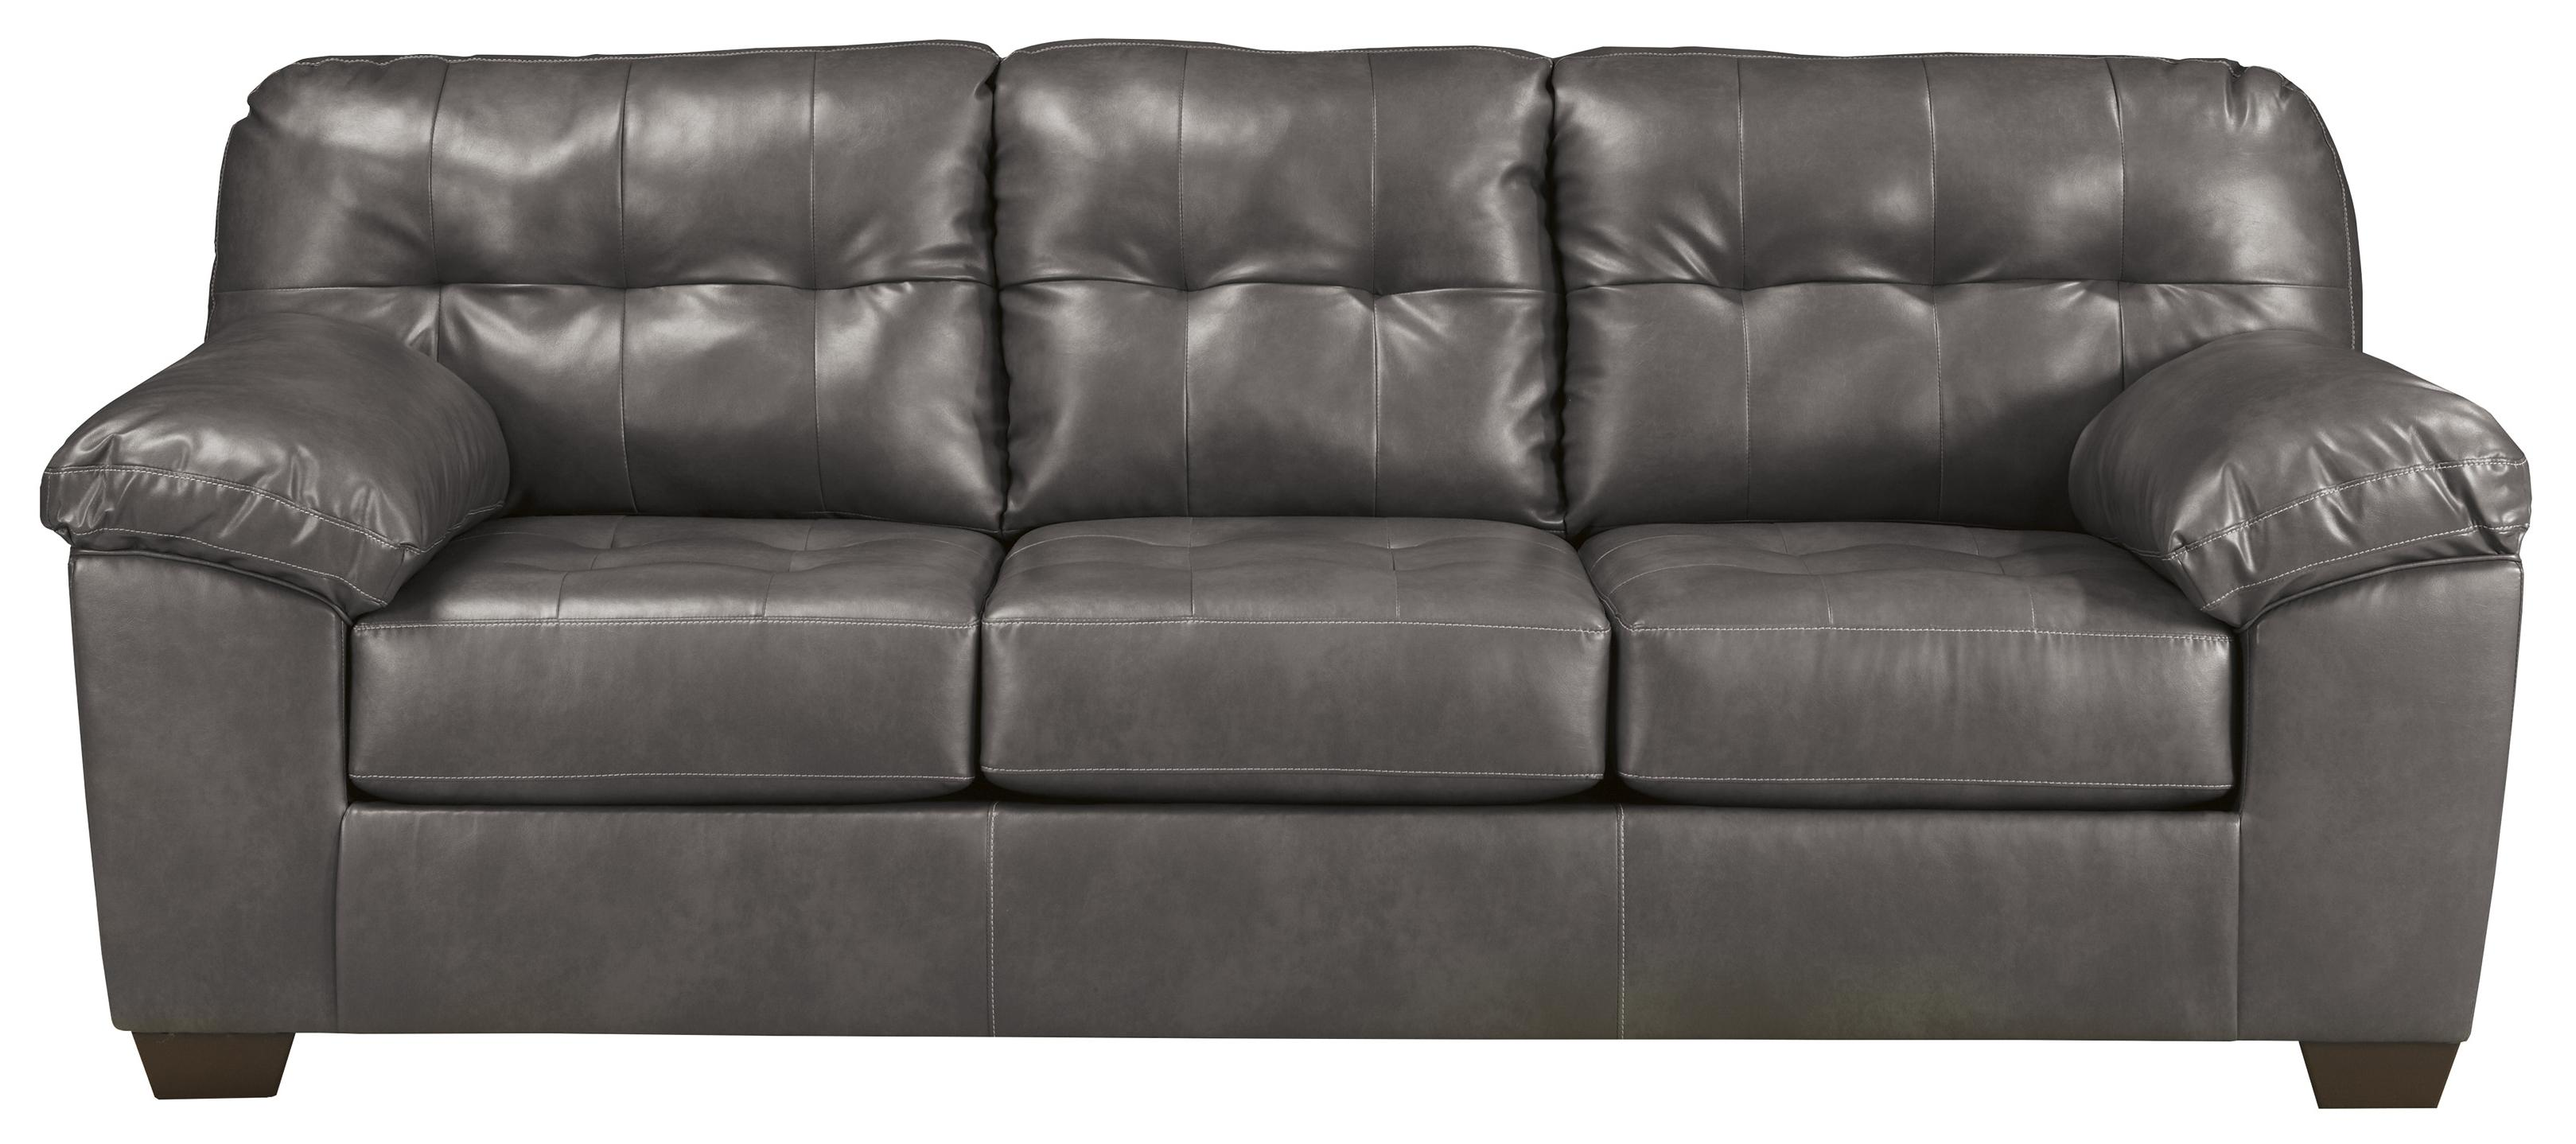 Contemporary Faux Leather Sofa w/ Pillow Arms